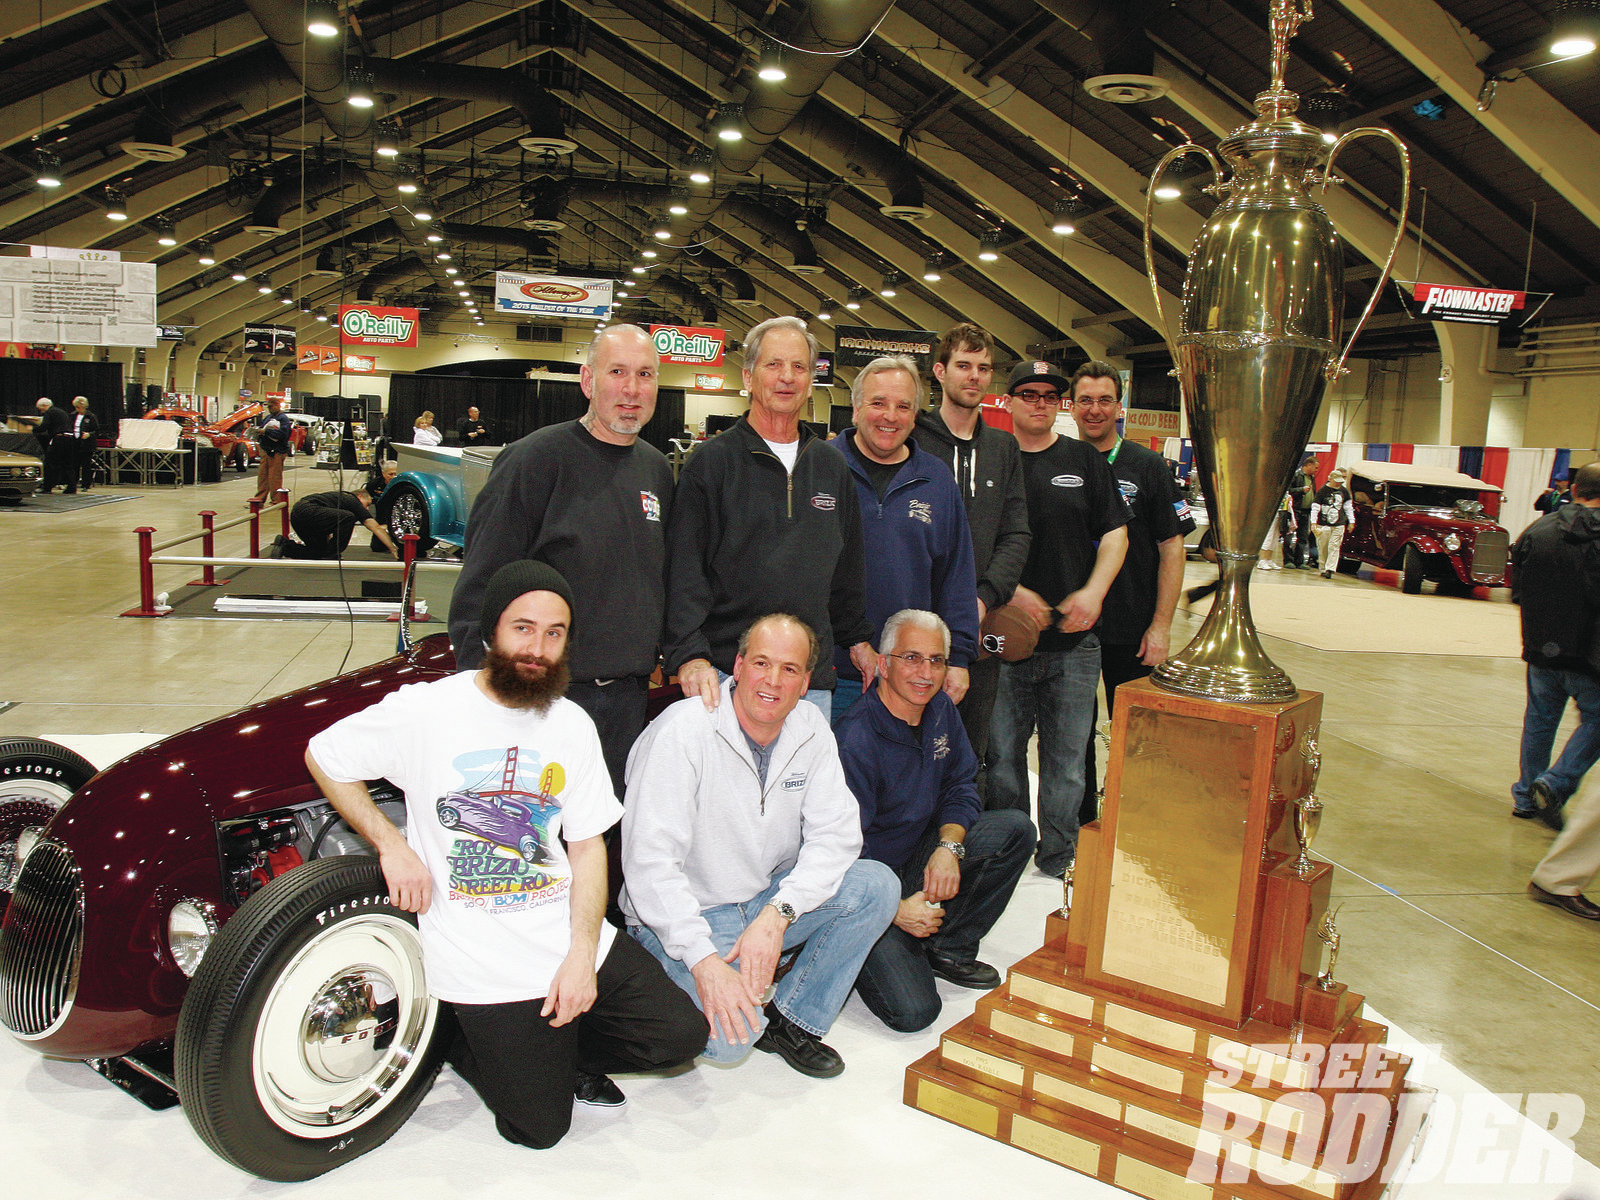 The building of an award-winning car is seldom an individual effort. Mumford (closest to the AMBR trophy) is flanked by Brizio and shop staff. One of the industry's premier painters is Darryl Hollenbeck (second from left) of Vintage Color Studio, who receives a big attaboy for the flawless paintwork. (Photo by Tim Bernsau)